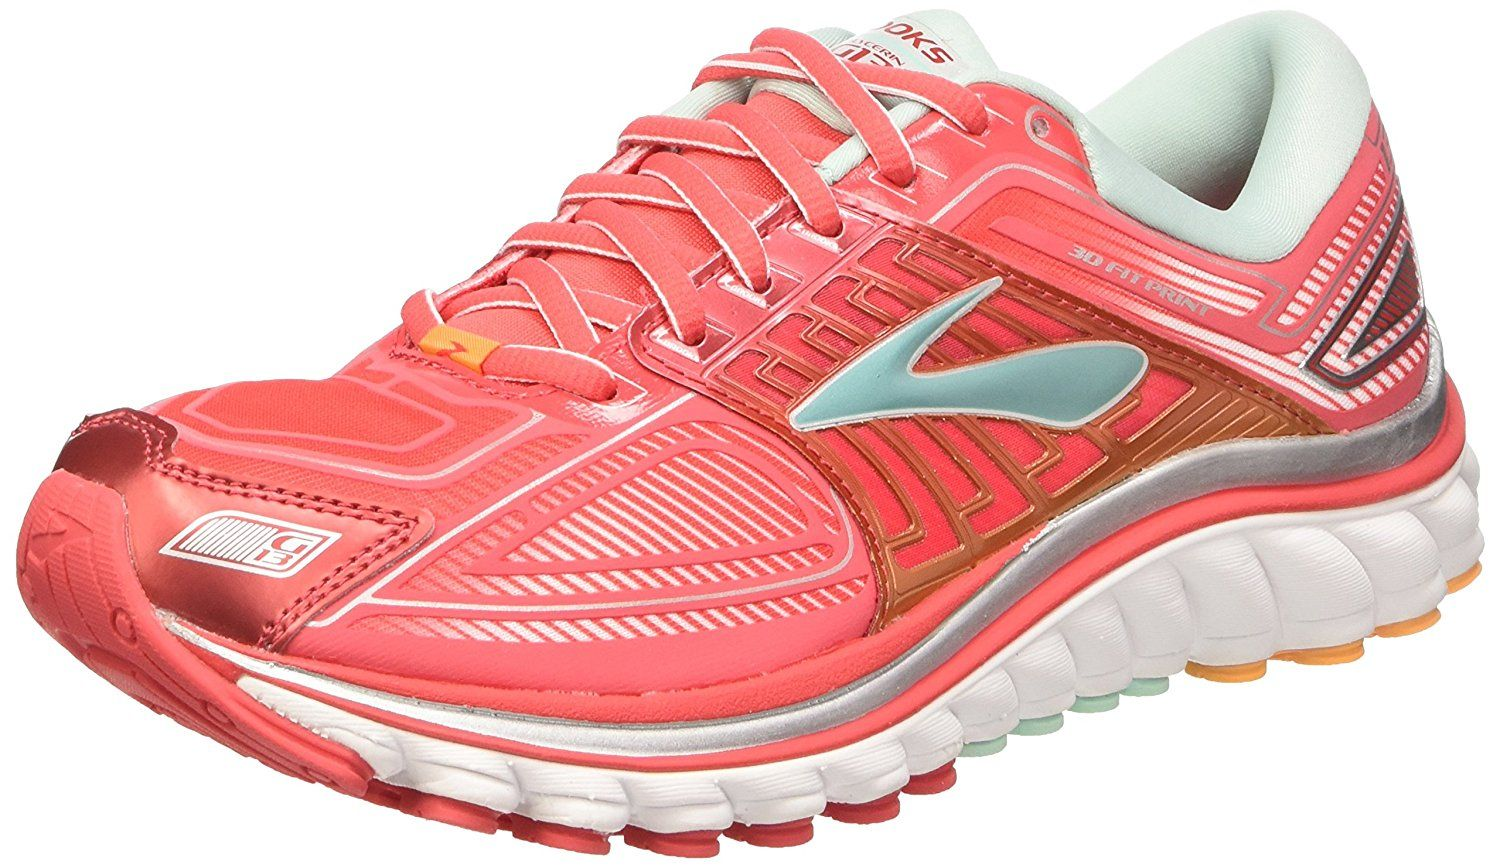 84cb7516aa8 4th Best Cushioned Running Shoes-Brooks Women s Glycerin 13  Brooks Women s  Glycerin 13 built for the neutral to mild overpronator